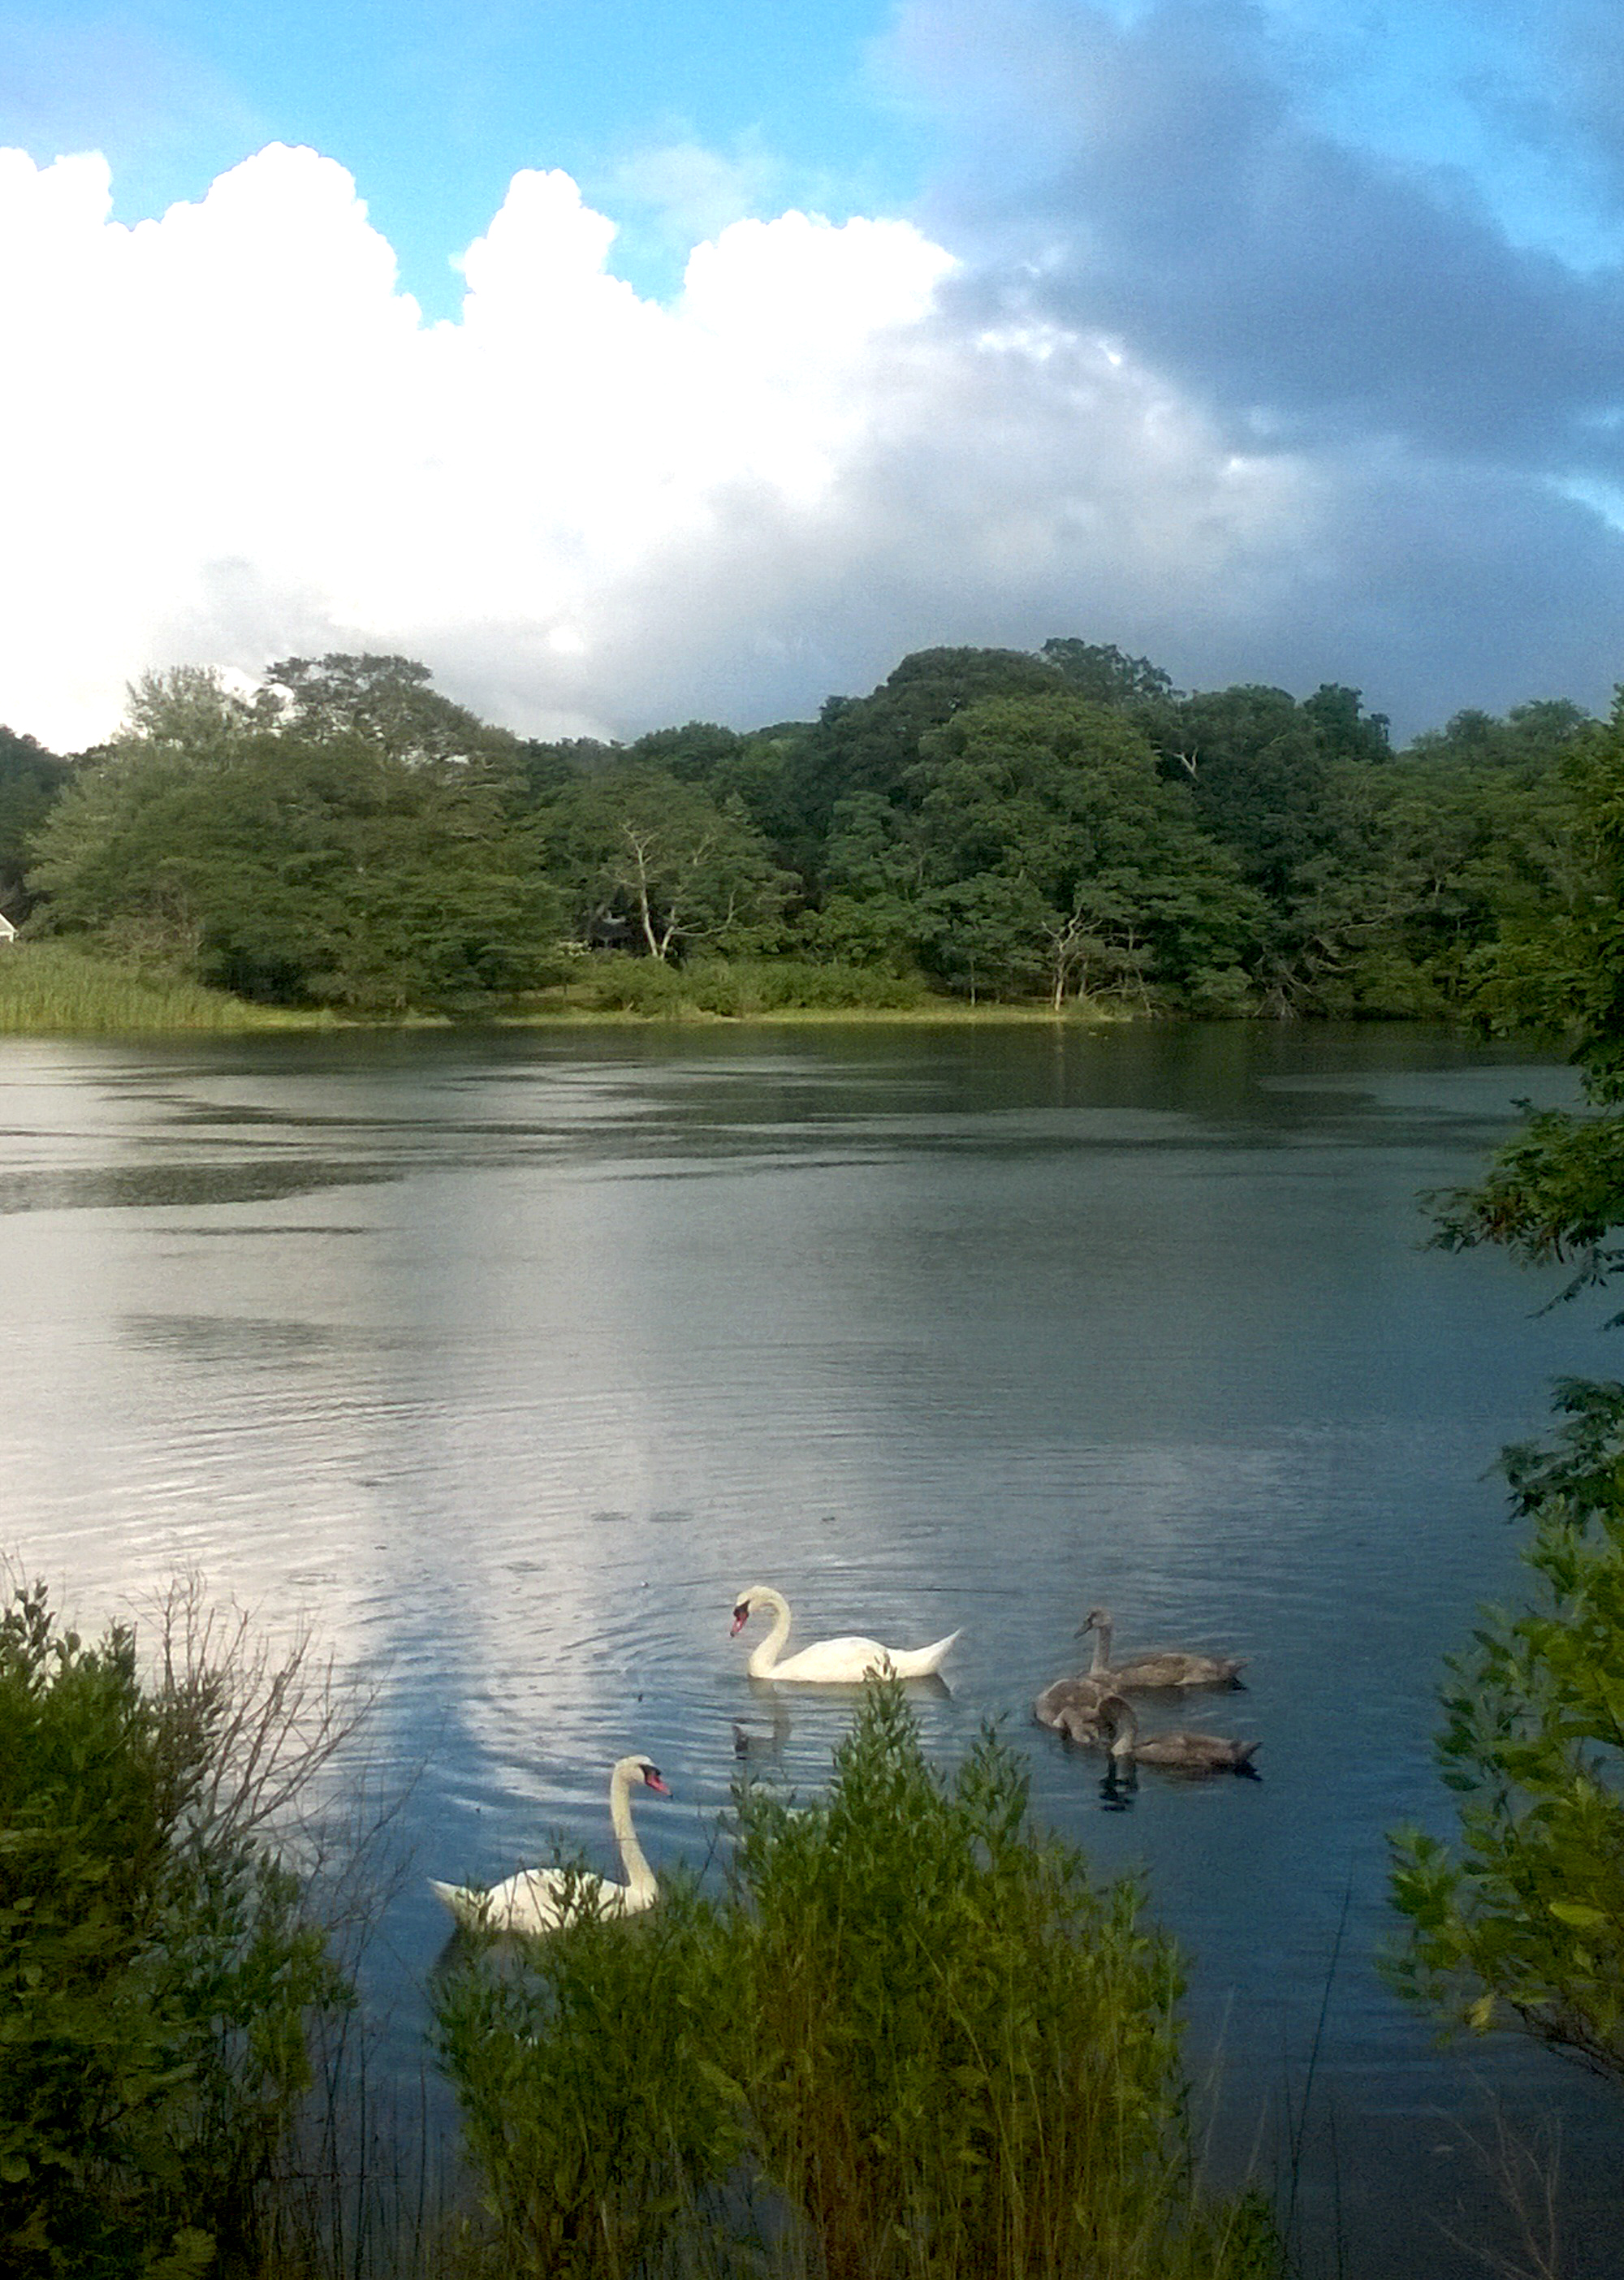 Swans before the storm